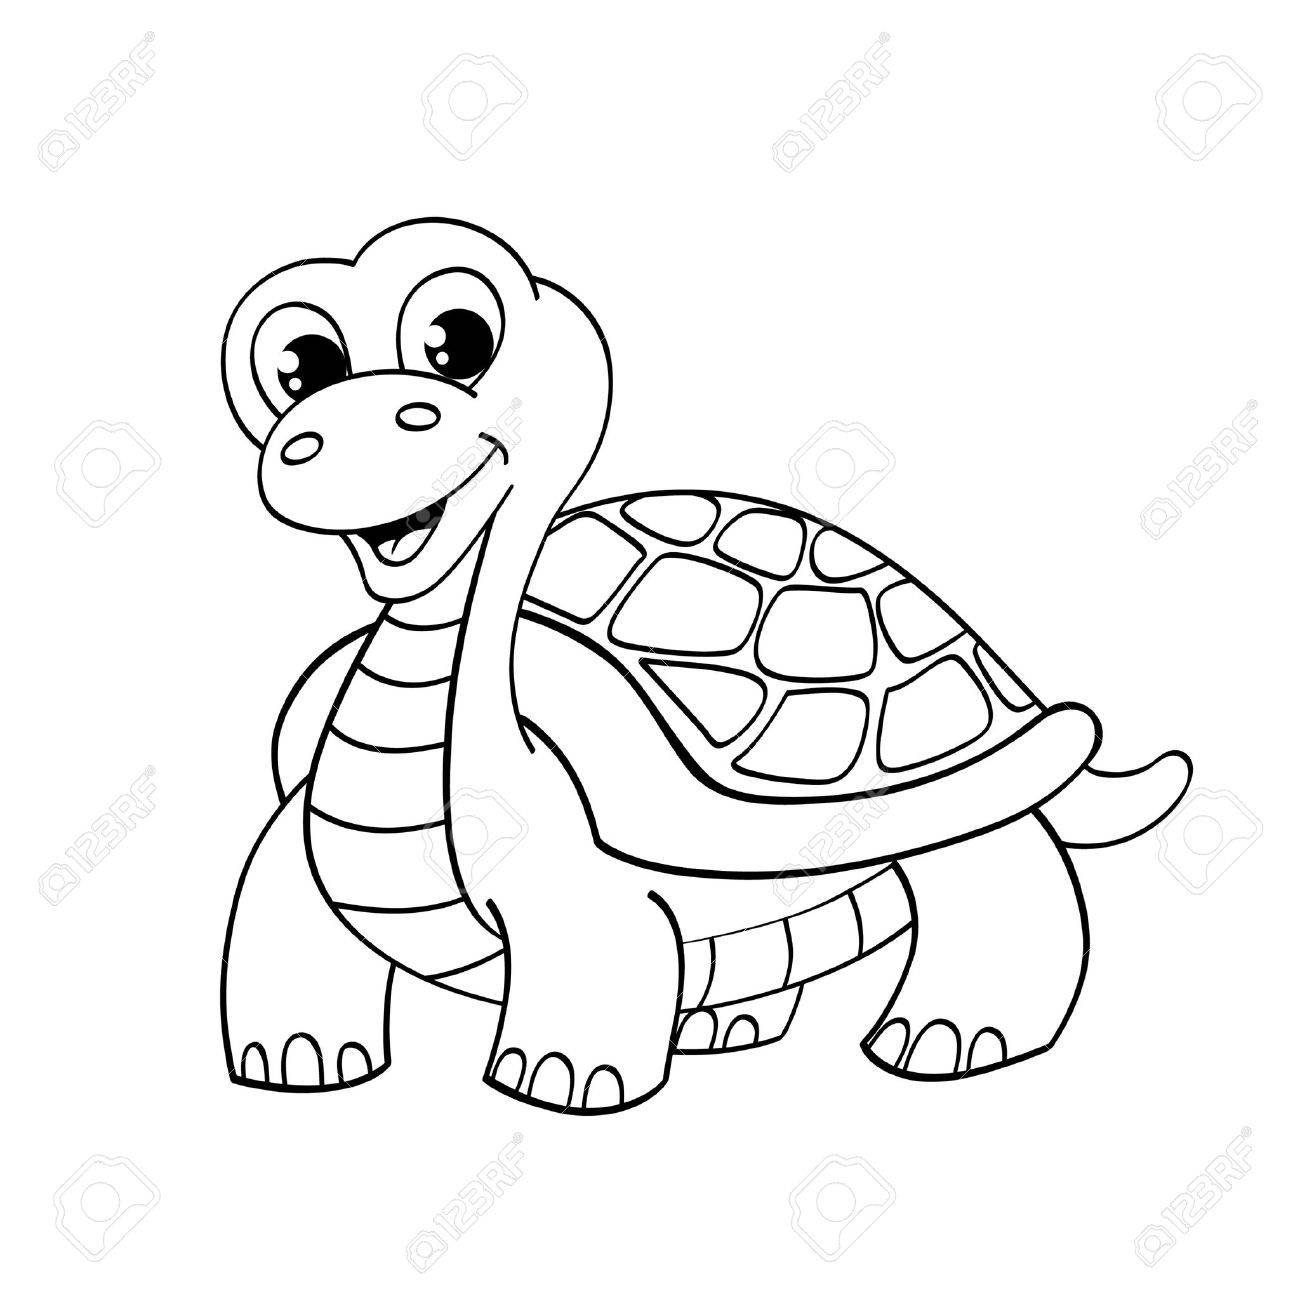 1300x1300 Funny Cartoon Turtle. Illustration For Coloring Royalty Free